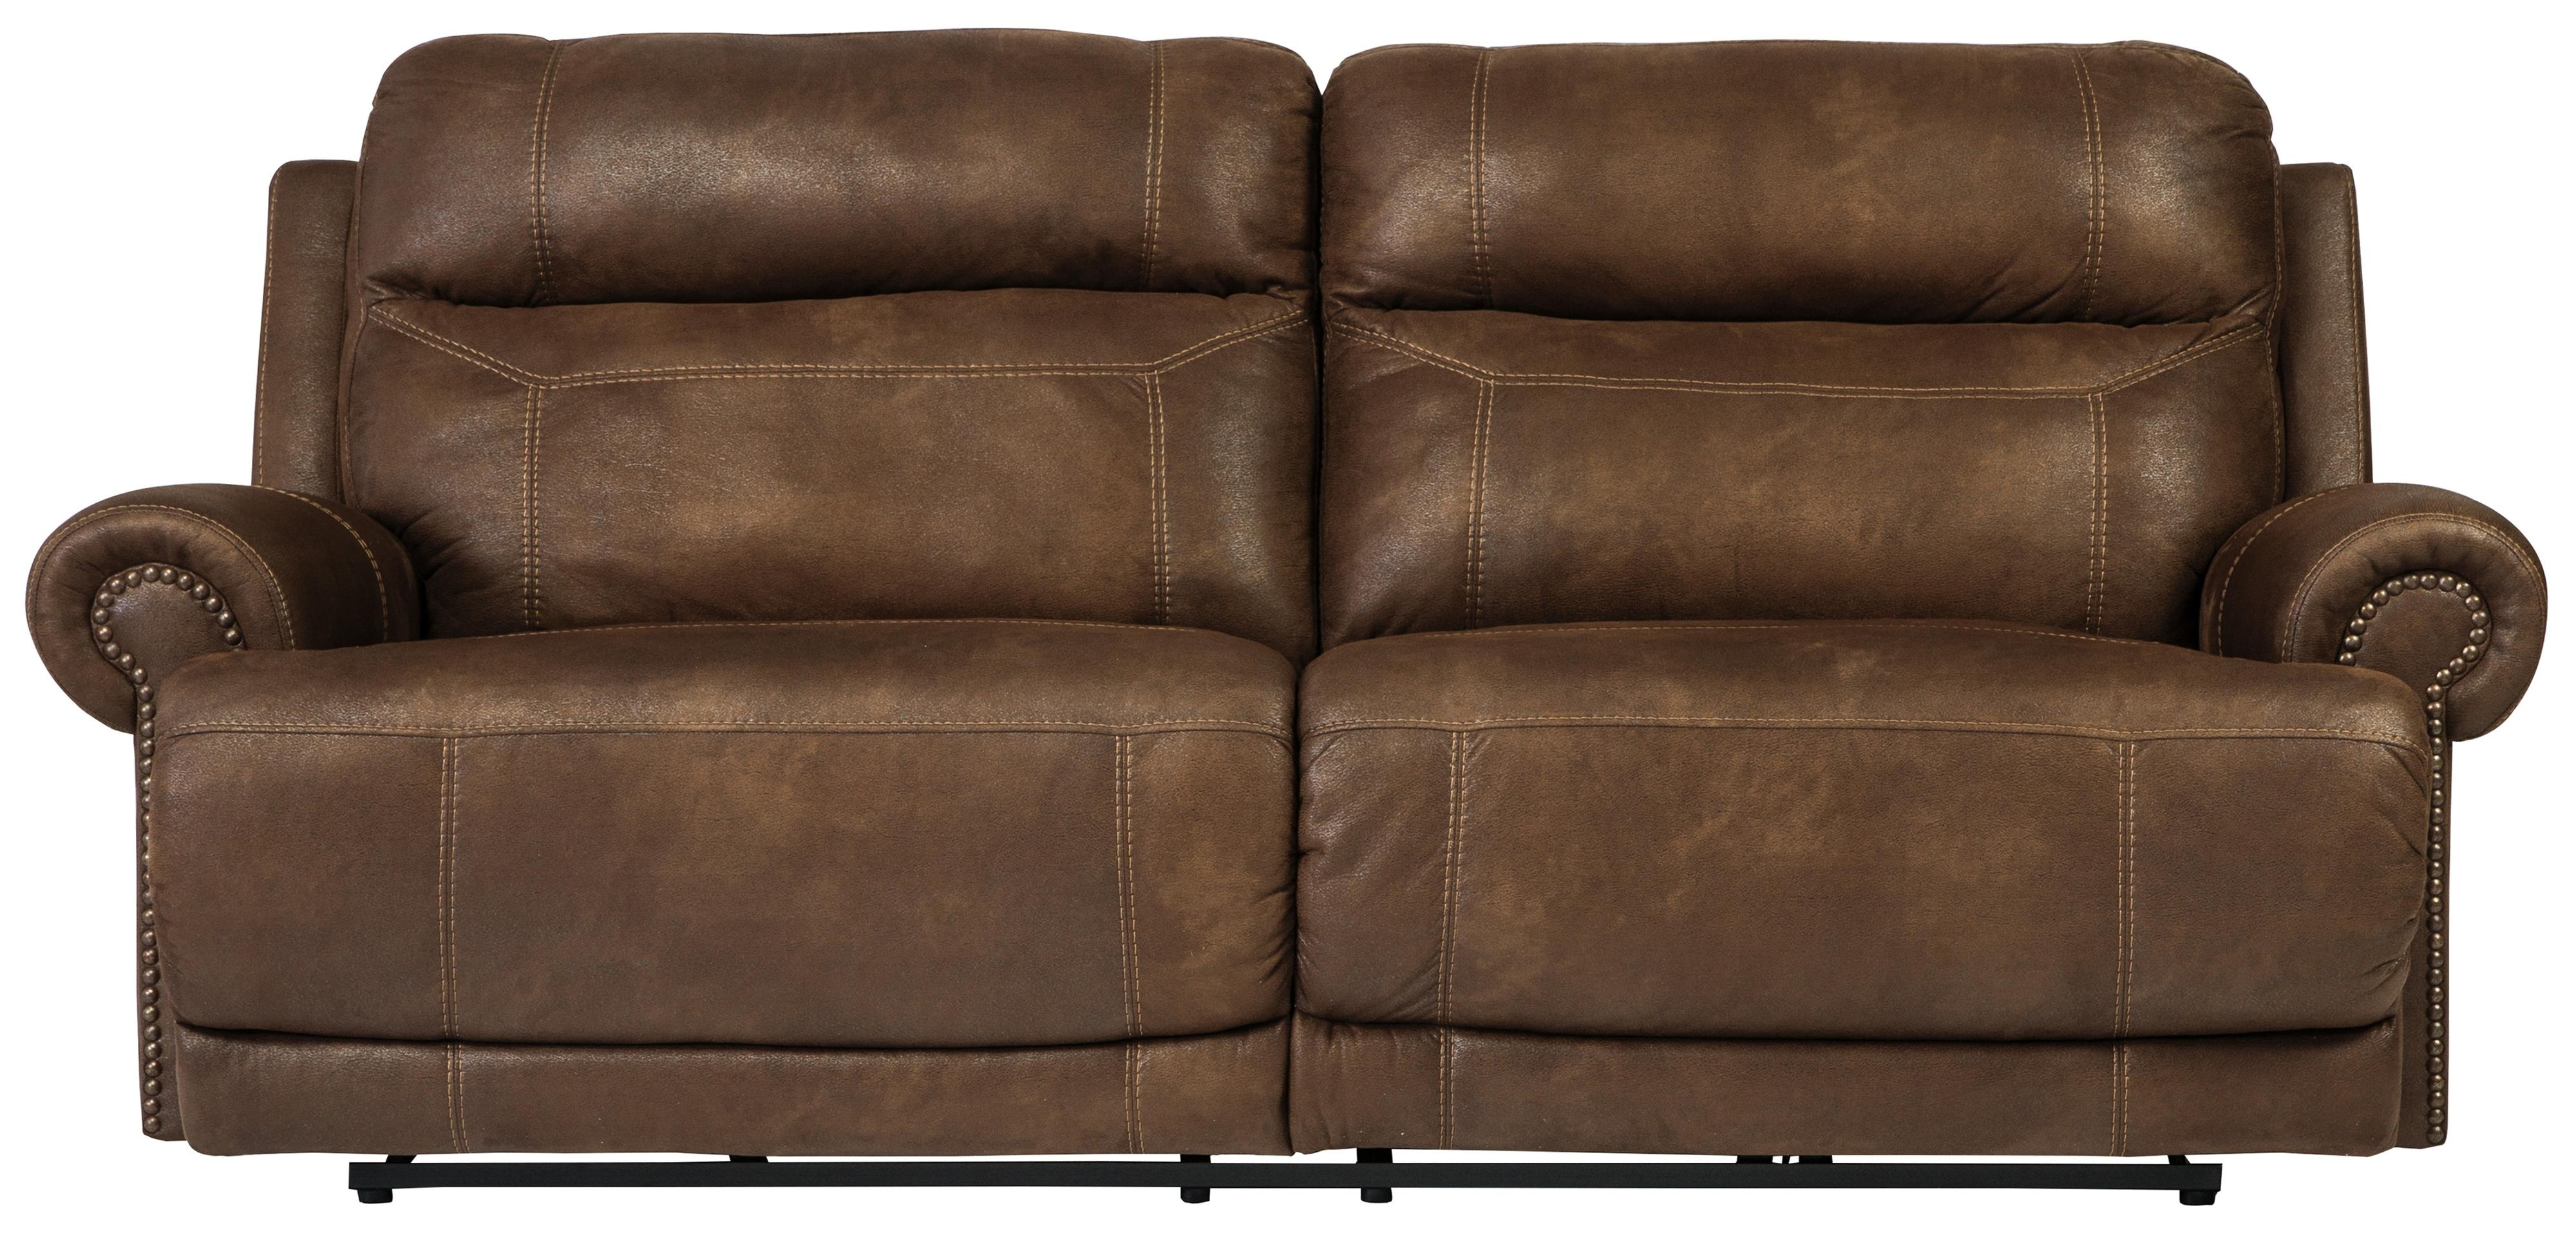 2 Seat Sectional Sofas Within Recent Signature Designashley Cayman Brown 3840081 2 Seat Reclining (View 6 of 20)